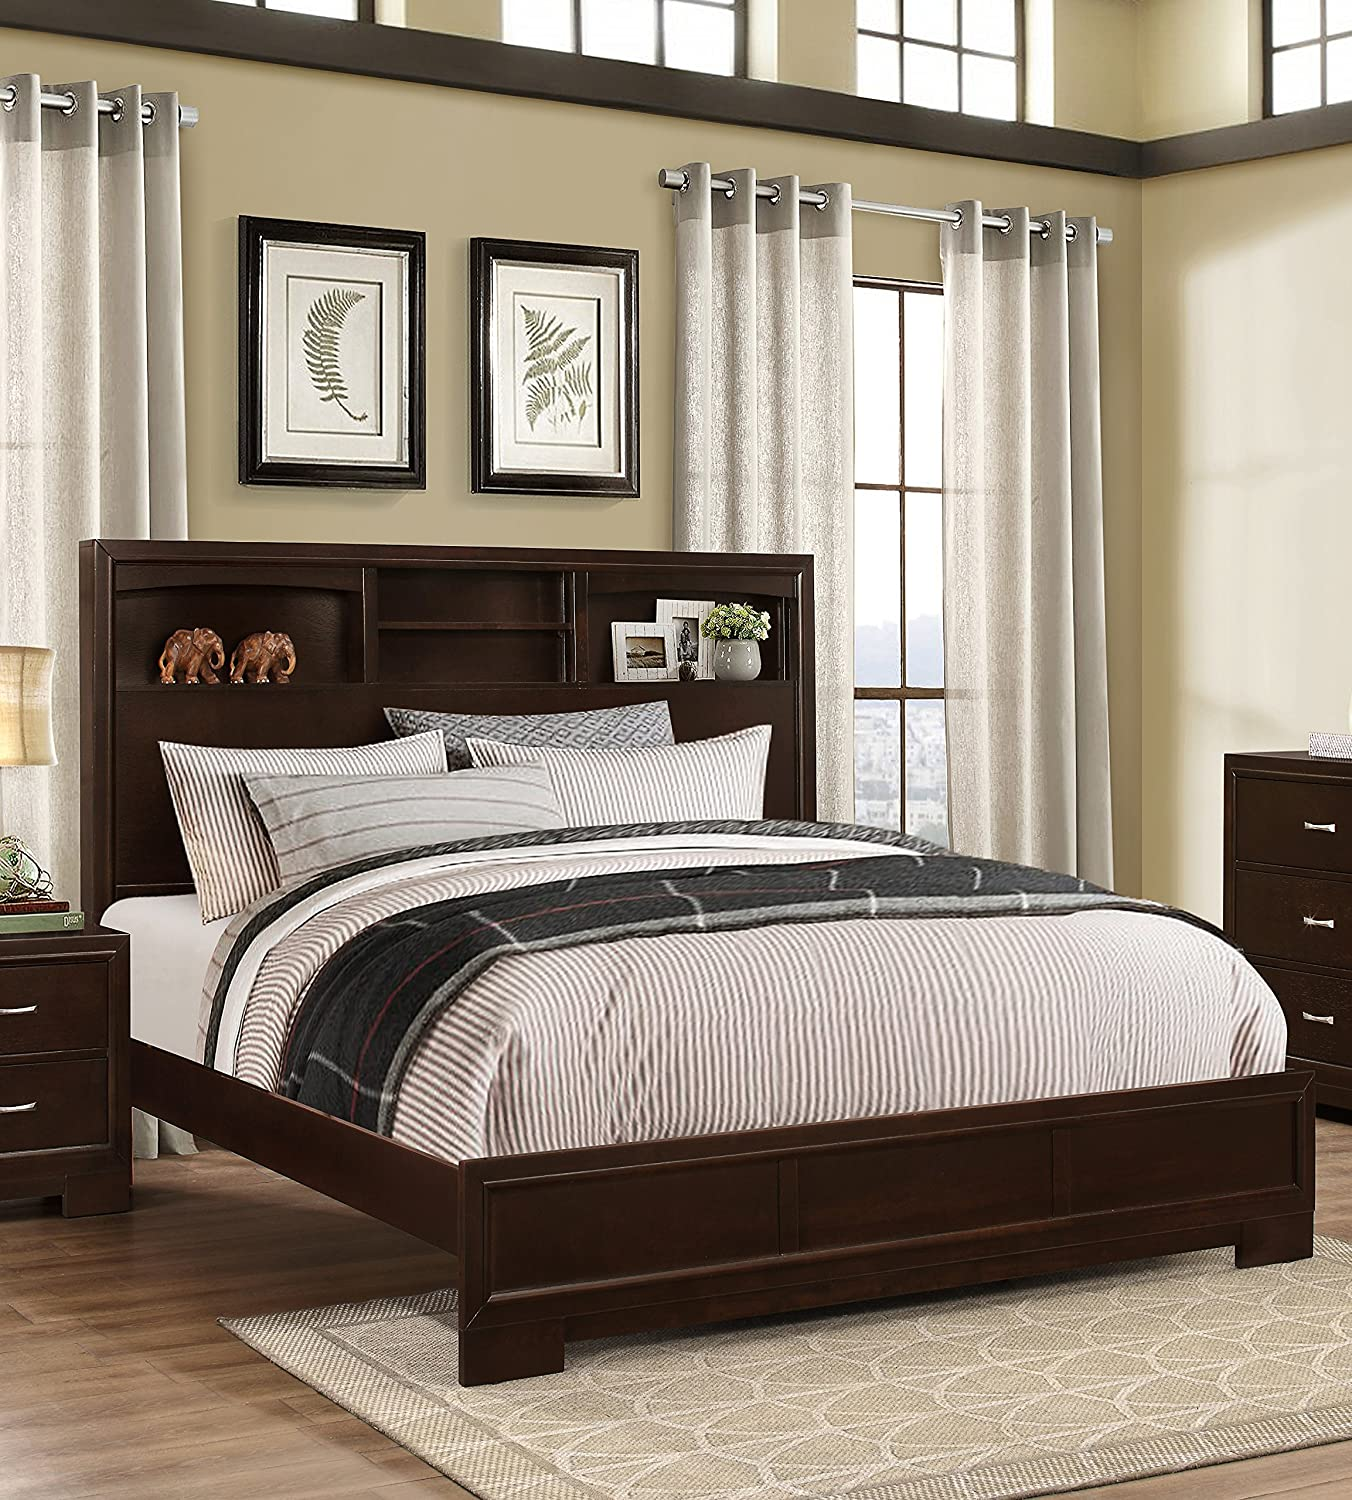 Amazon.com: Roundhill Furniture Montana Modern 5 Piece Wood Bedroom Set  With Bed, Dresser, Mirror, Nightstand, Chest, Queen, Walnut: Kitchen U0026  Dining